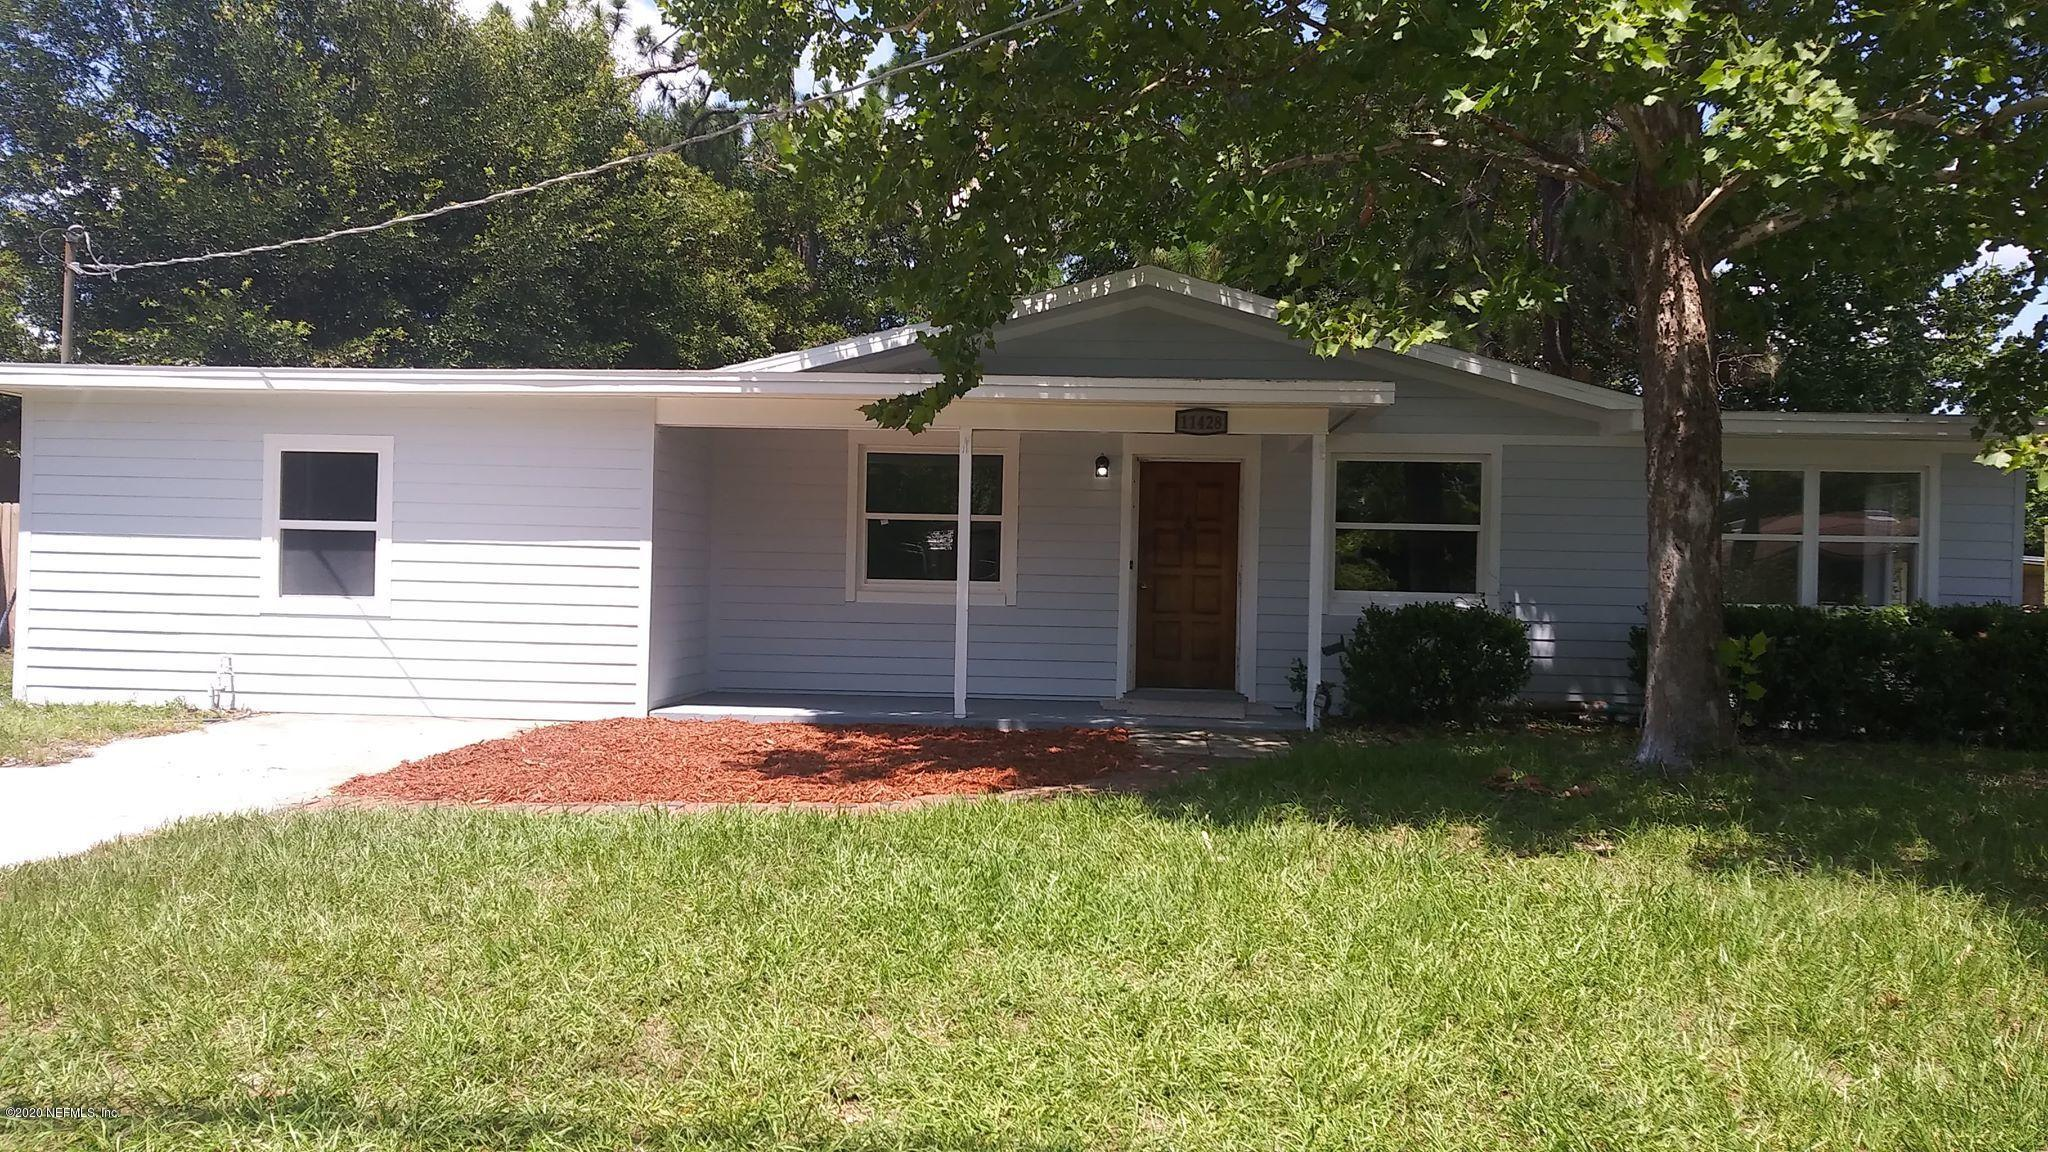 11428 EMUNESS, JACKSONVILLE, FLORIDA 32218, 3 Bedrooms Bedrooms, ,1 BathroomBathrooms,Residential,For sale,EMUNESS,1062978